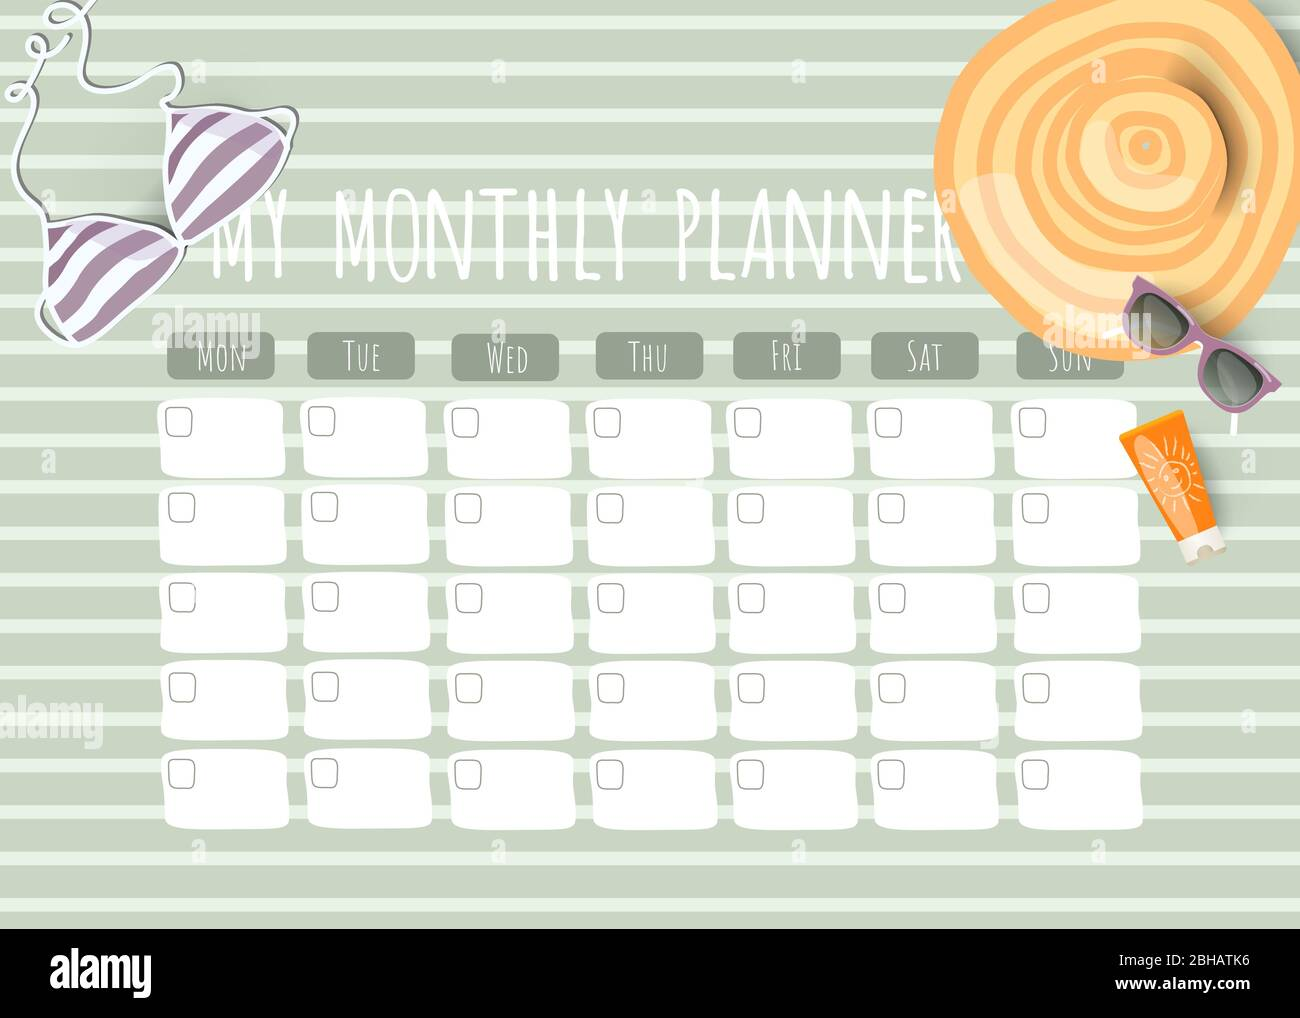 Planner Schedule Template from c8.alamy.com